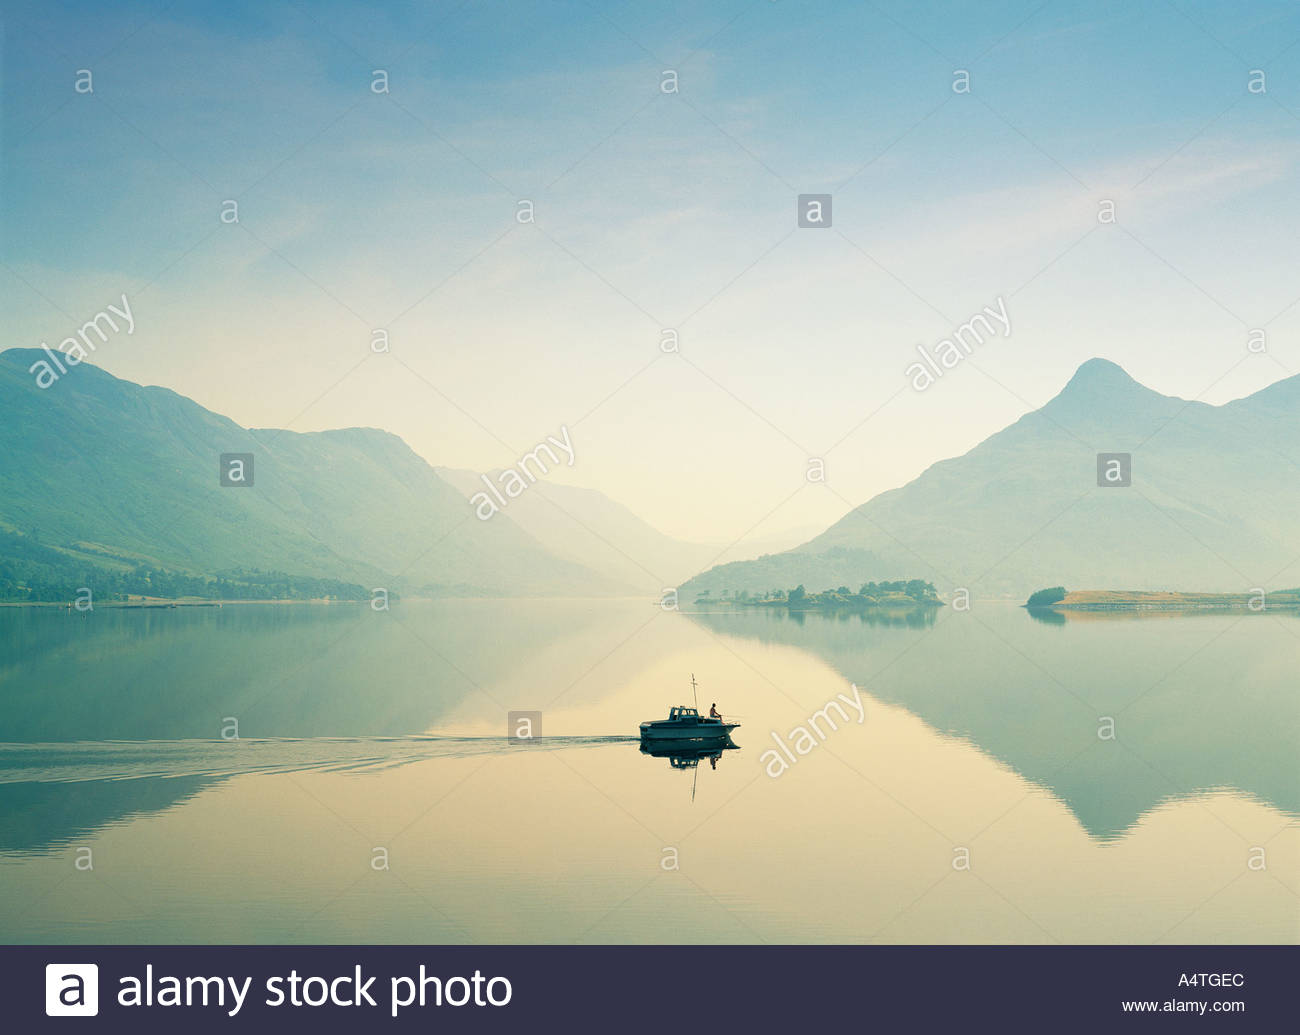 Man saltwater fishing from boat on Loch Leven at north end of Loch Linnhe, Glencoe near Fort William. Highland Region, Scotland - Stock Image